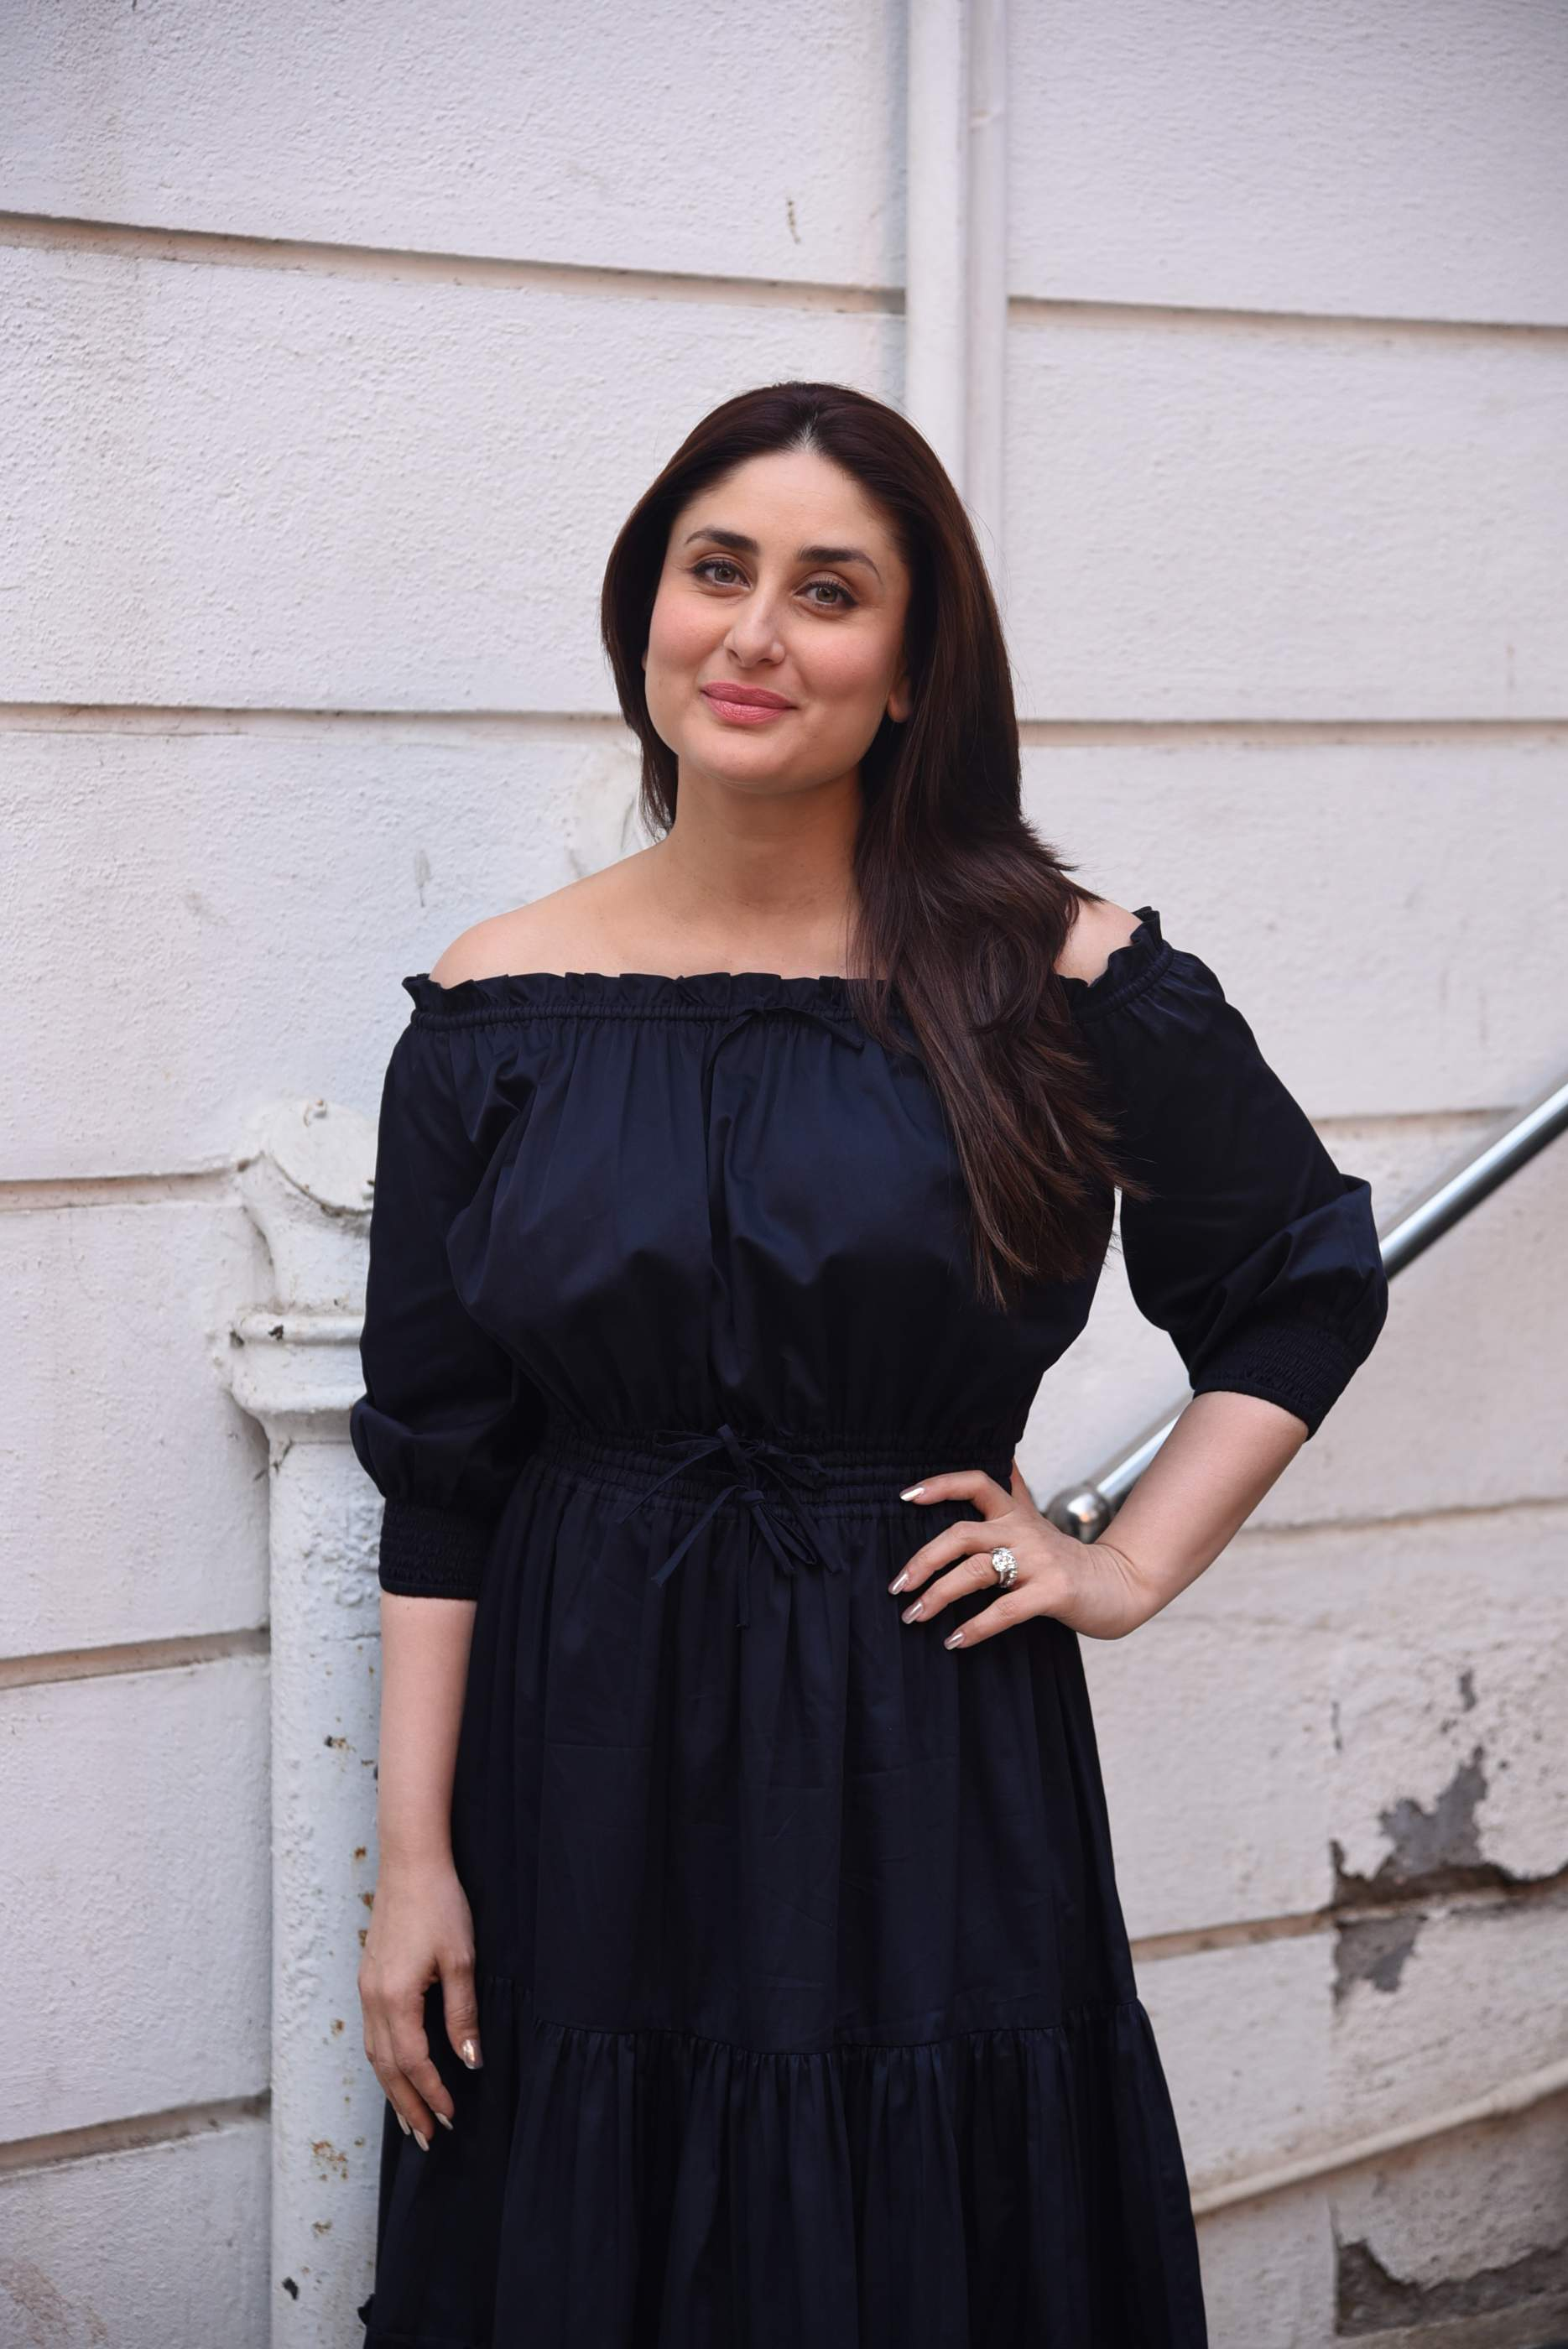 kareena kapoor Brand New Pics of Beautiful Kareena Kapoor Khan | Bollywood Kareena Rujuta Diwekar 27